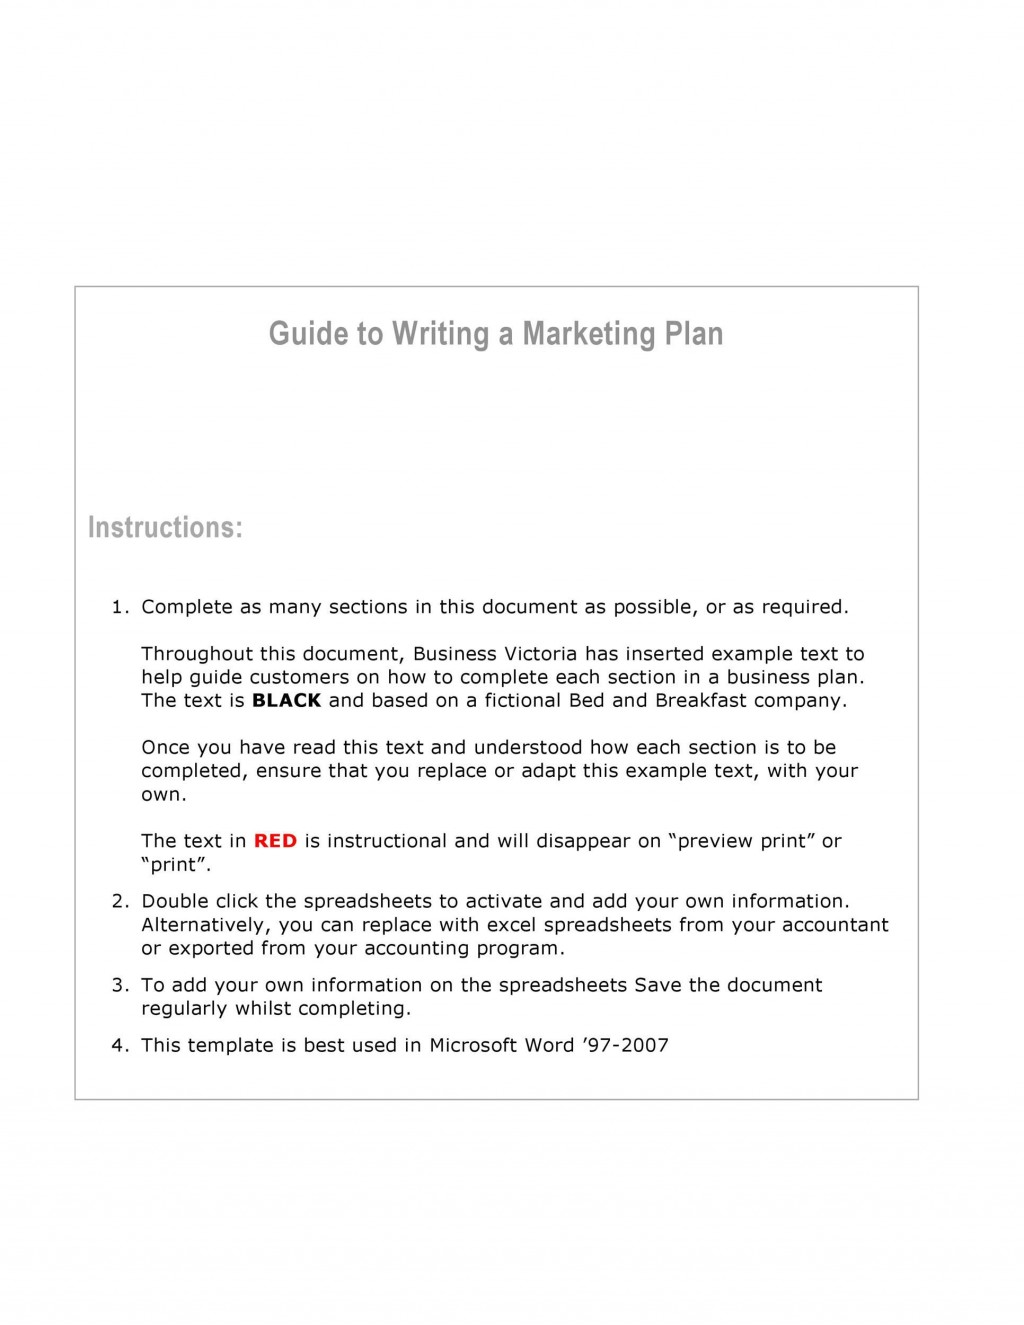 008 Remarkable Marketing Plan Template Word Free Download High Resolution Large